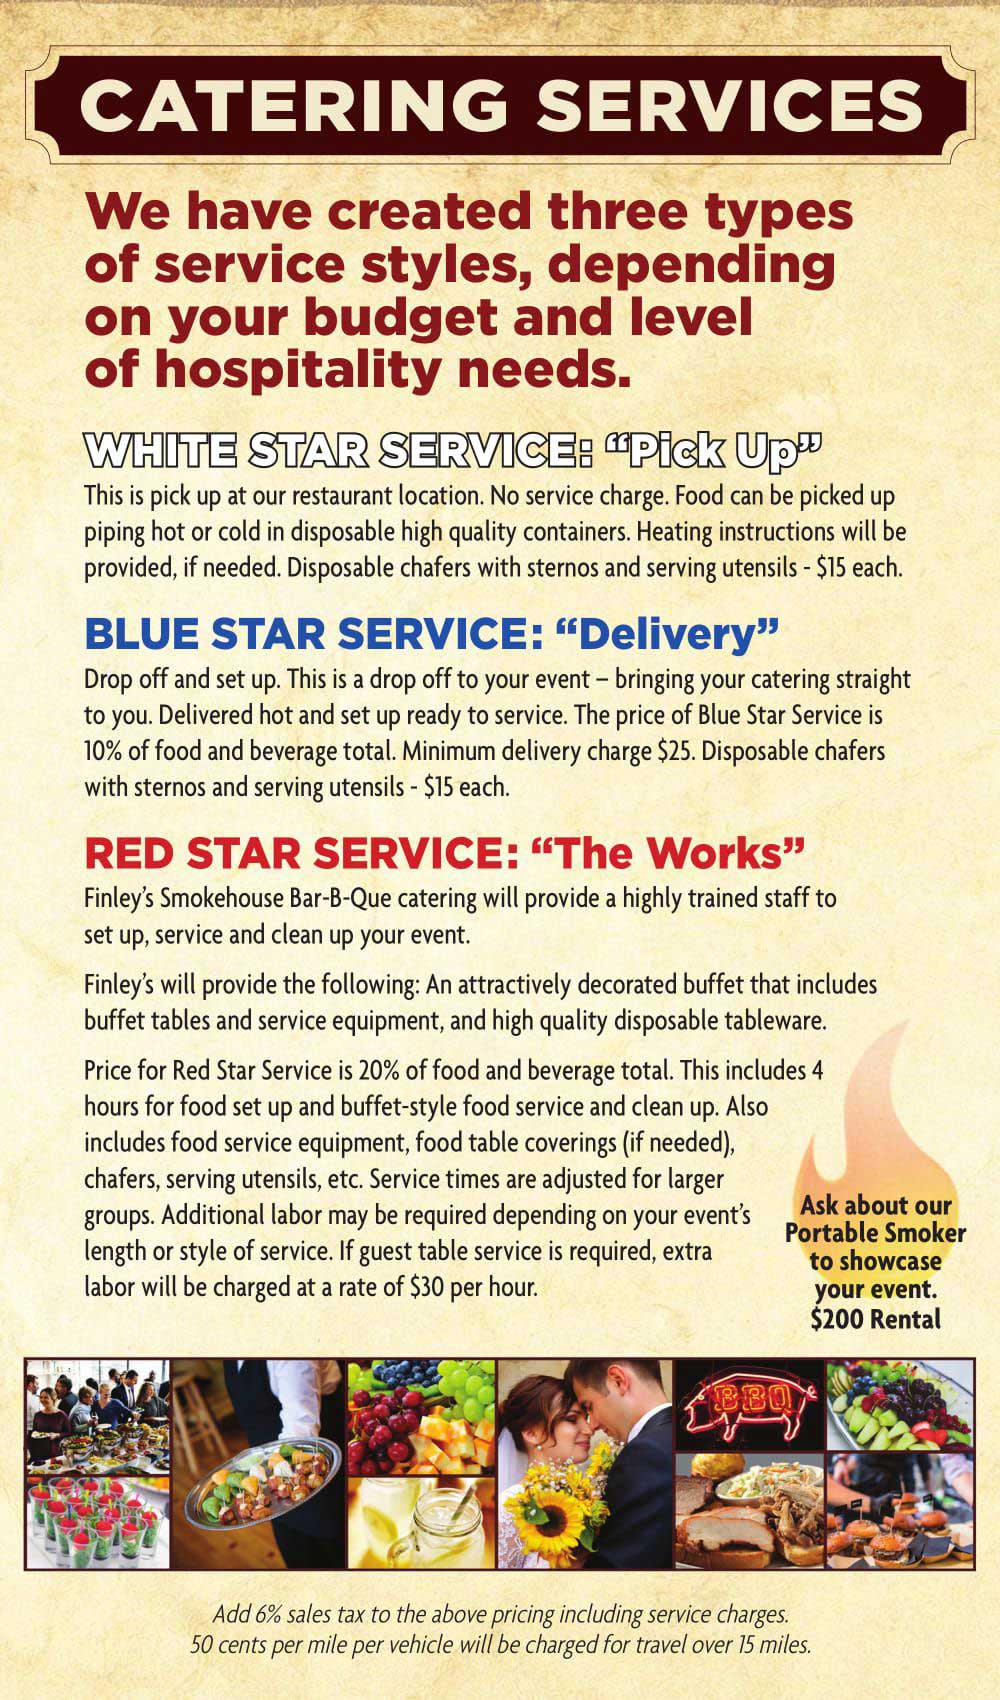 Catering & Delivery Restaurant Services in Battle Creek, Jackson, Kalamazoo & Lansing, Michigan